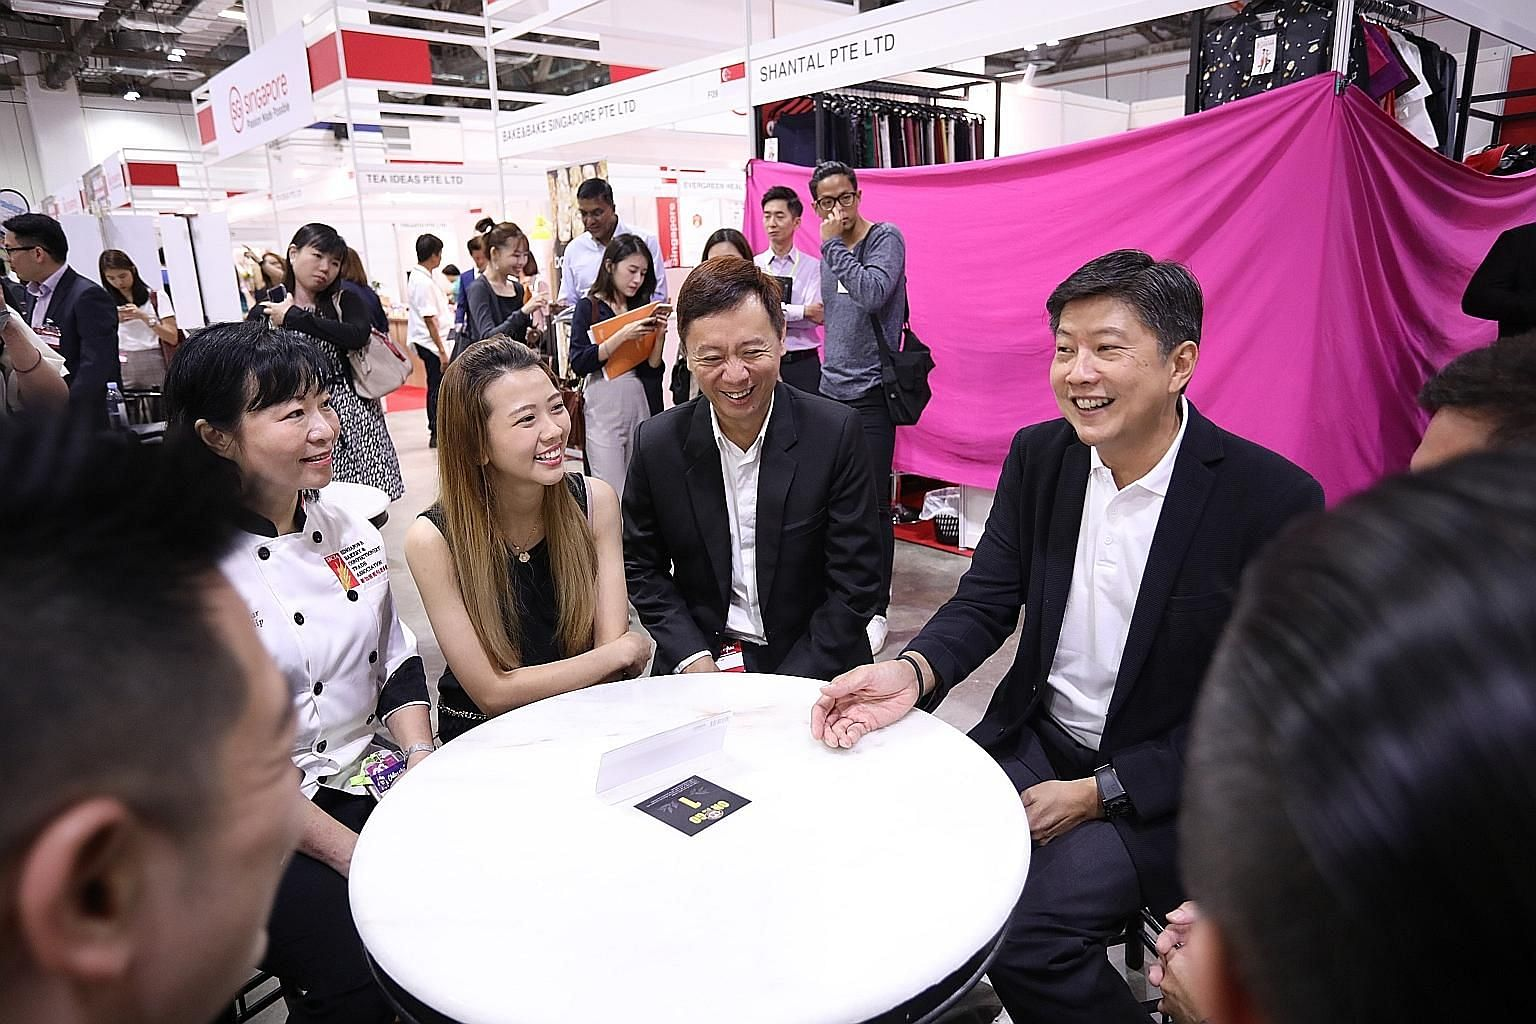 (From far left) Singapore Bakery and Confectionery Trade Association secretary-general Judy Koh; Ms Connie Ng, a baker from Bread Story; Mr Gilbert Tan, CEO of e2i; and Mr Ng Chee Meng, NTUC secretary-general and Minister in the Prime Minister's Offi